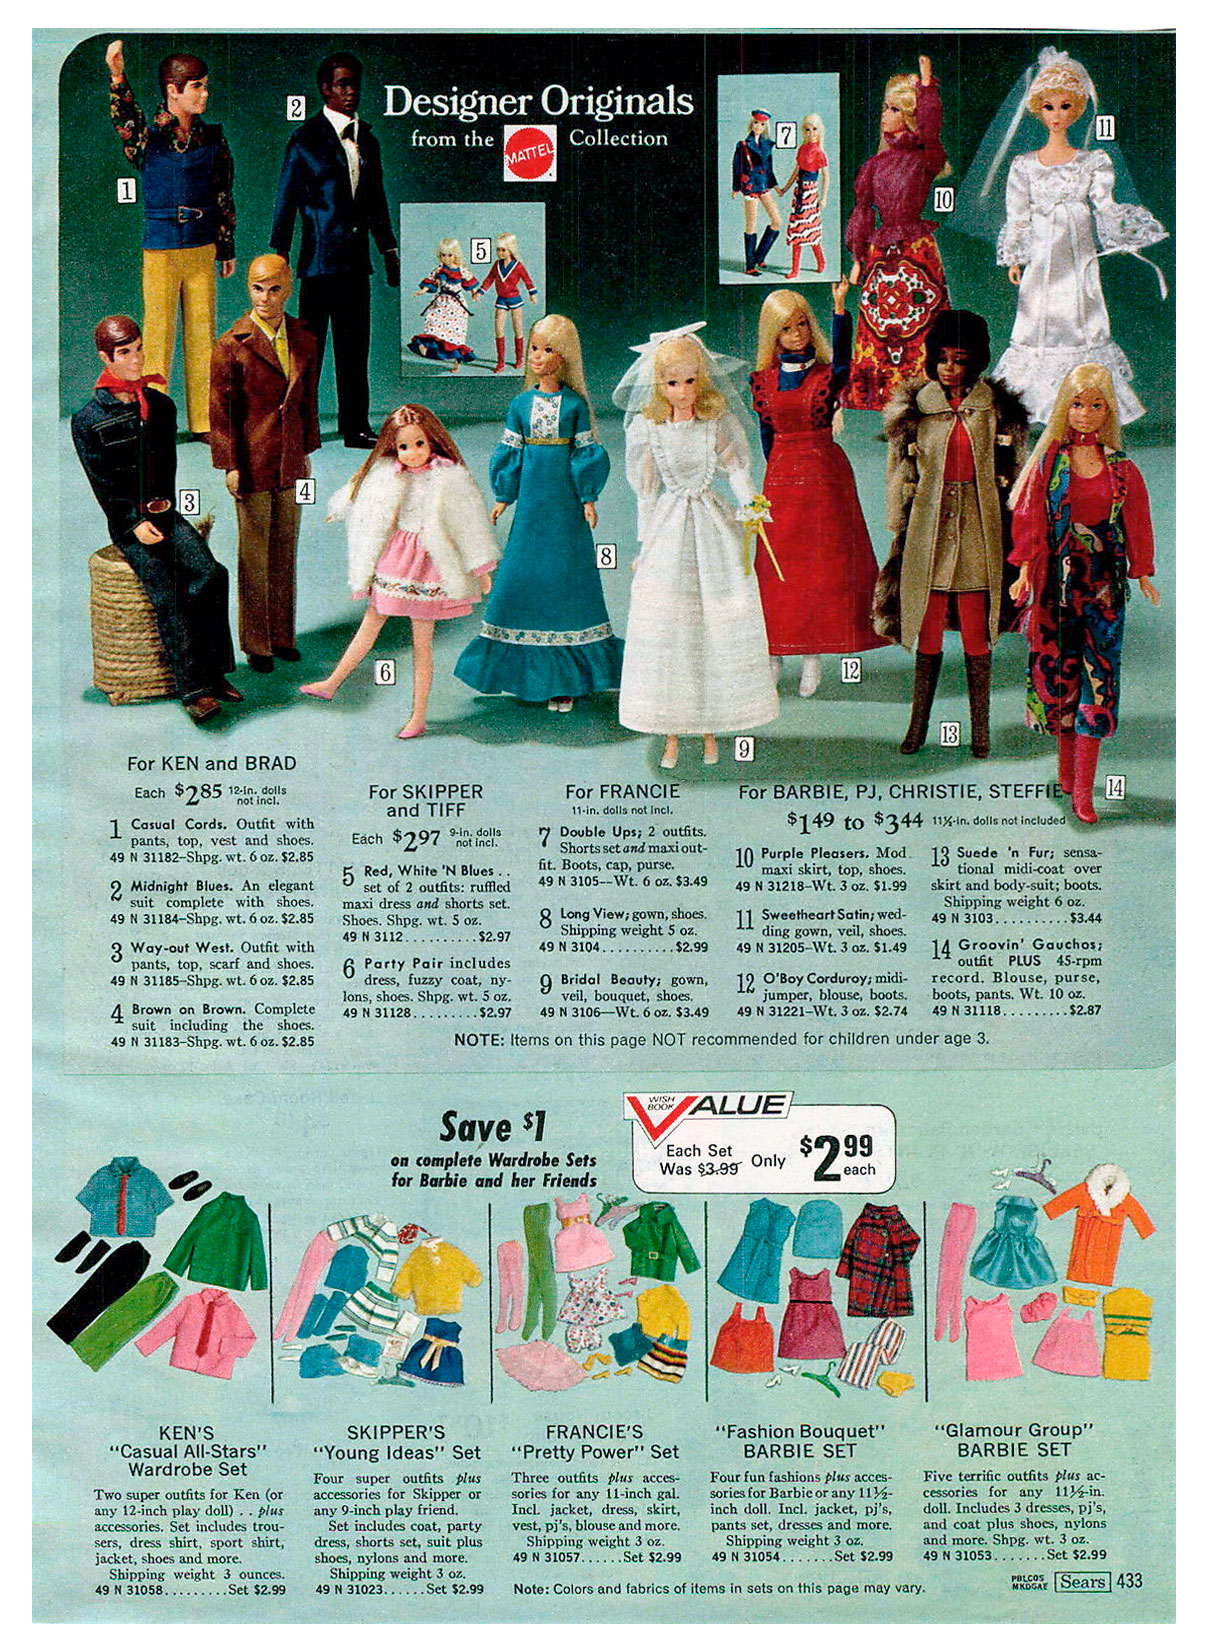 From 1972 Sears Christmas Wish Book